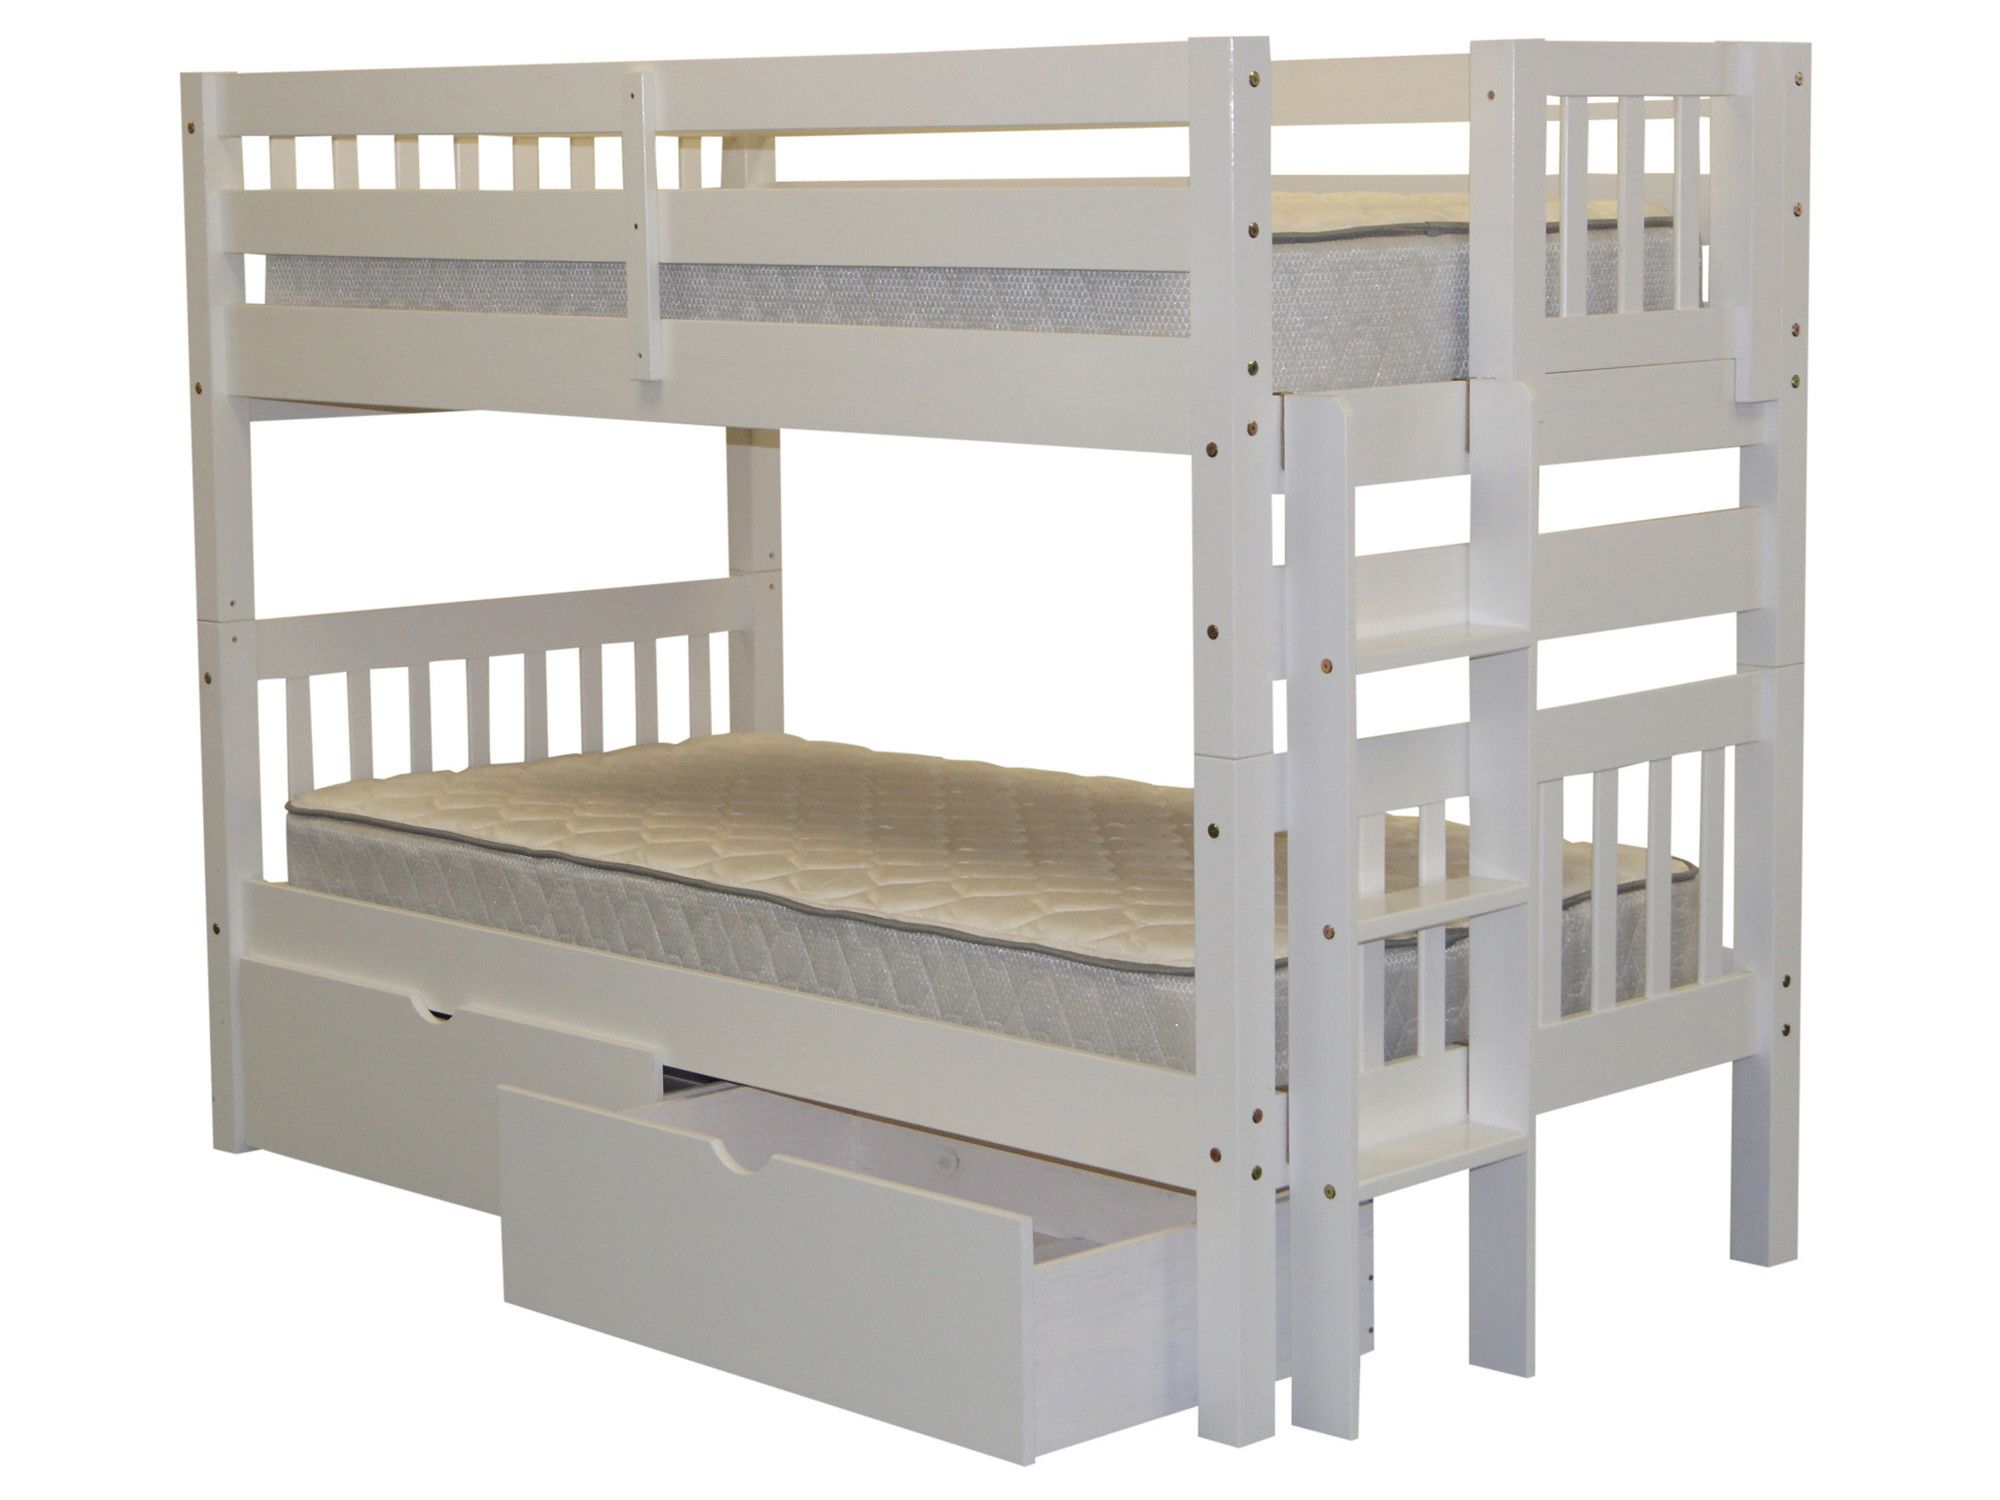 Master bedroom shelves above the bed  Mission Twin over Twin Bunk Bed with Storage  Twins and Products